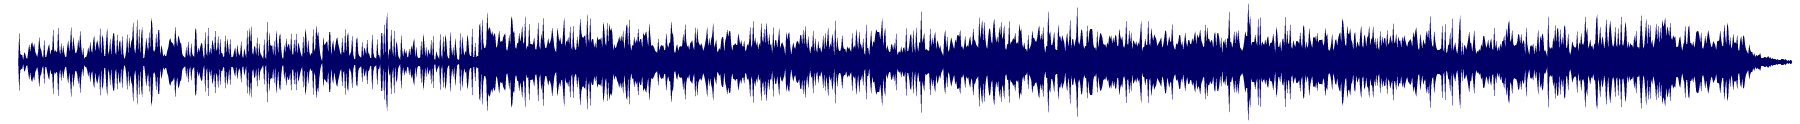 waveform of track #70053